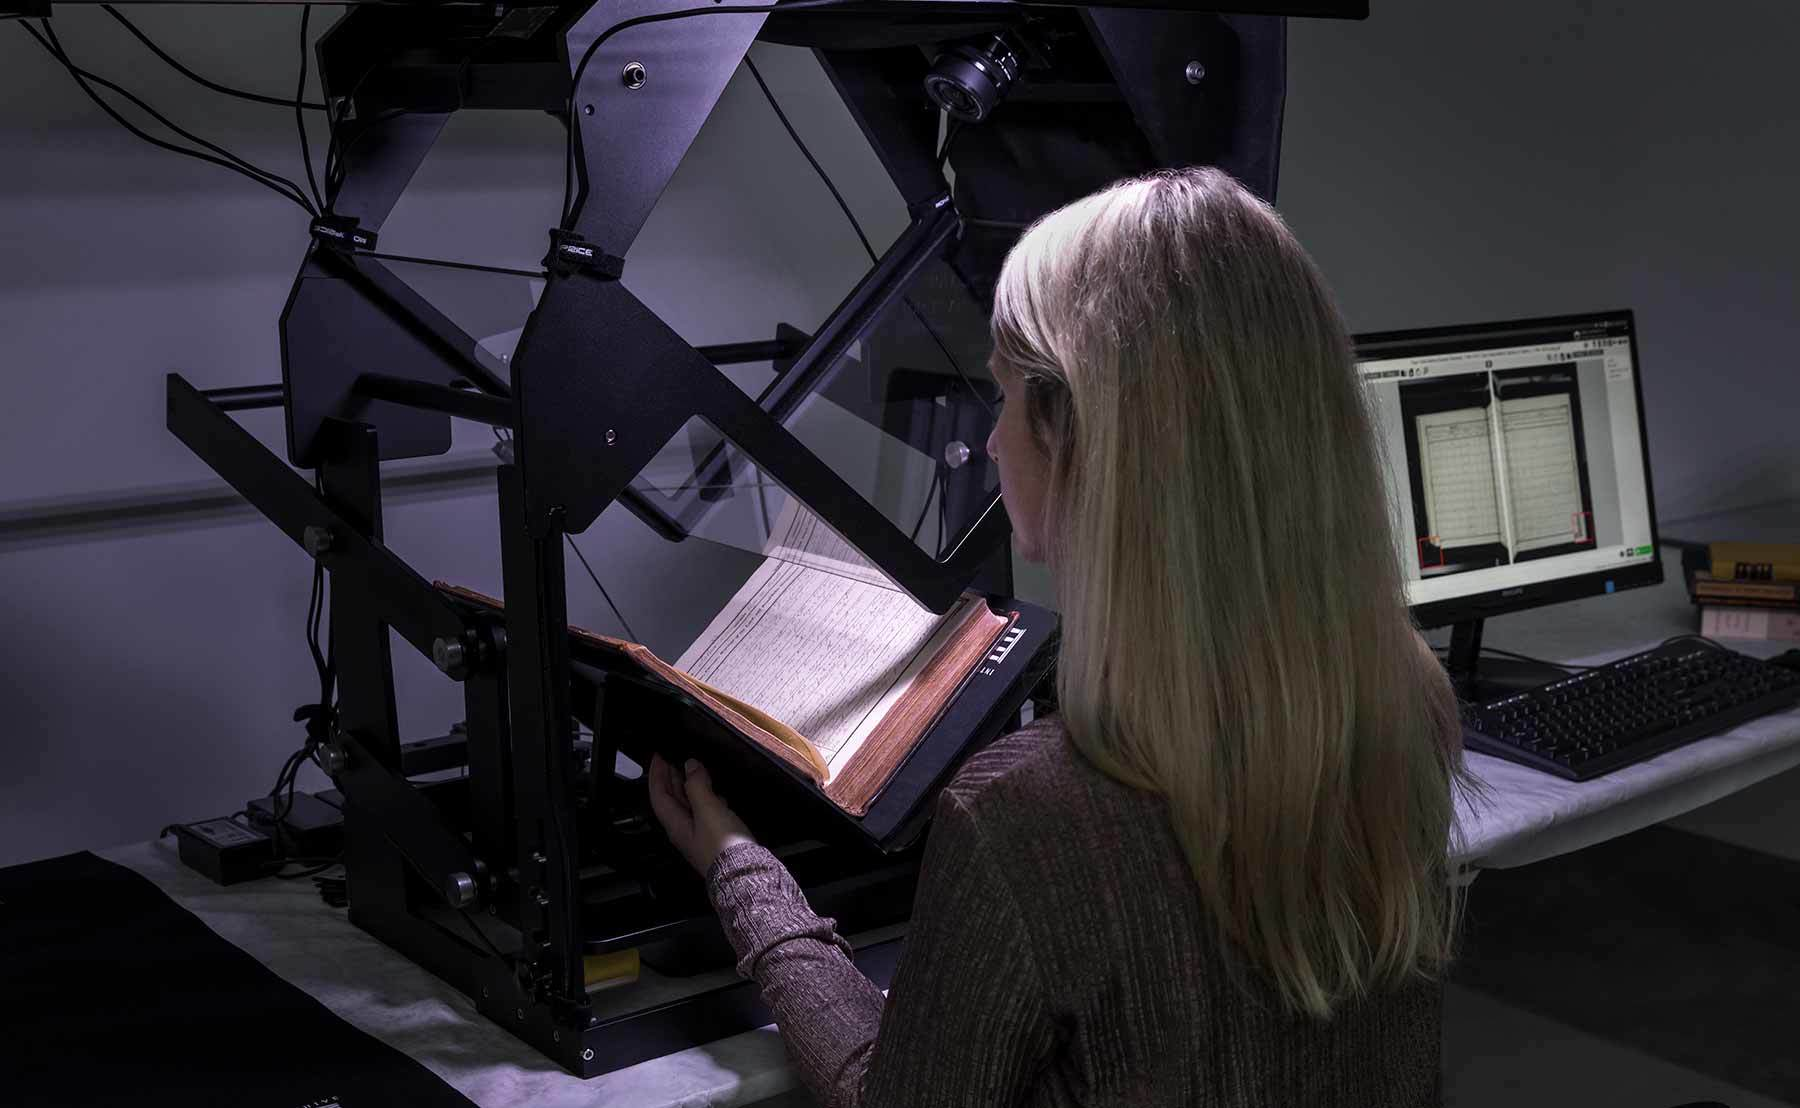 digitizing its collections